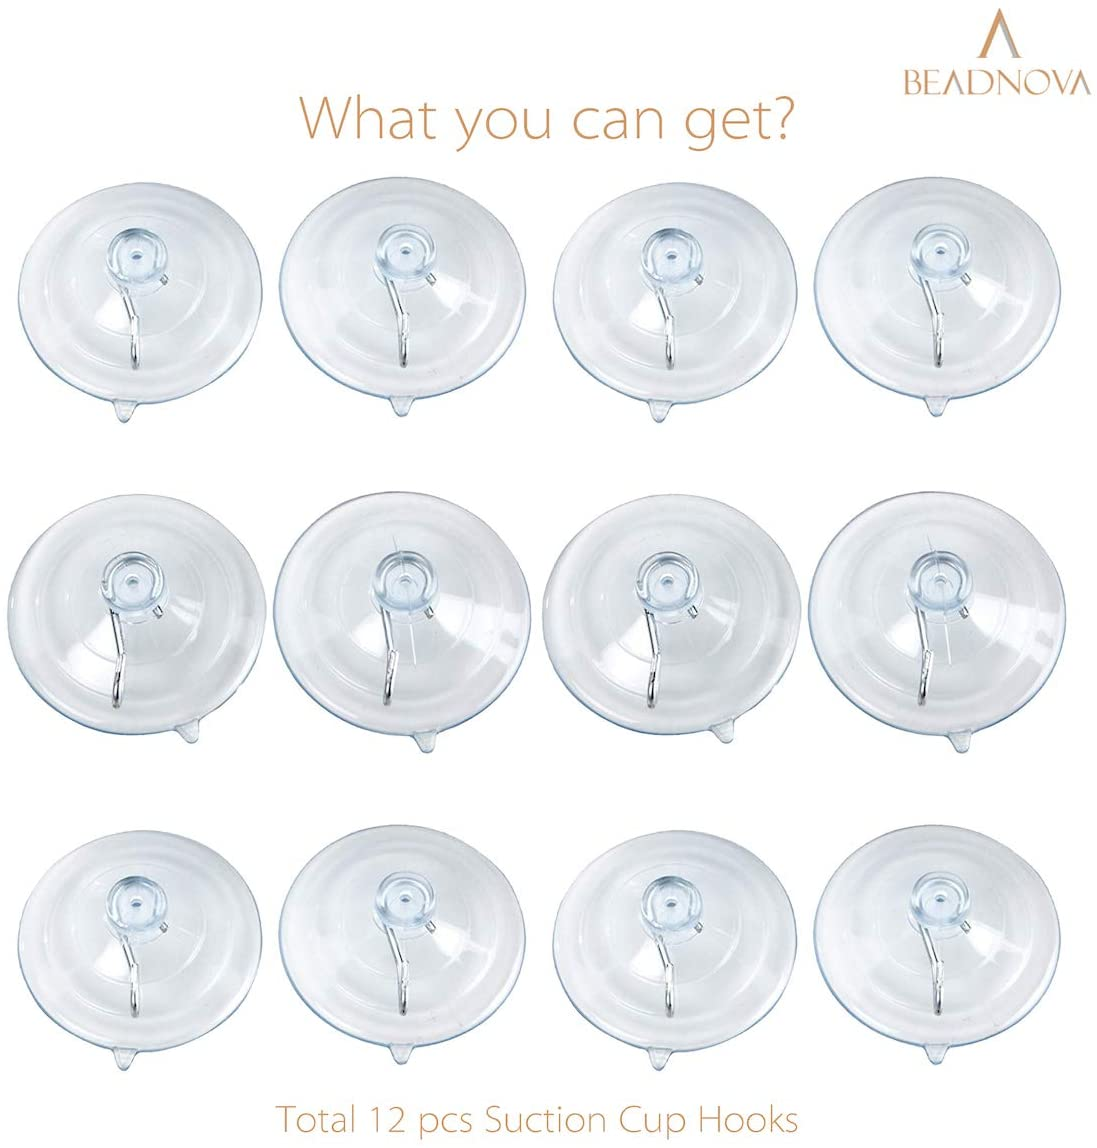 BEADNOVA Suction Cups for Glass-12p-1